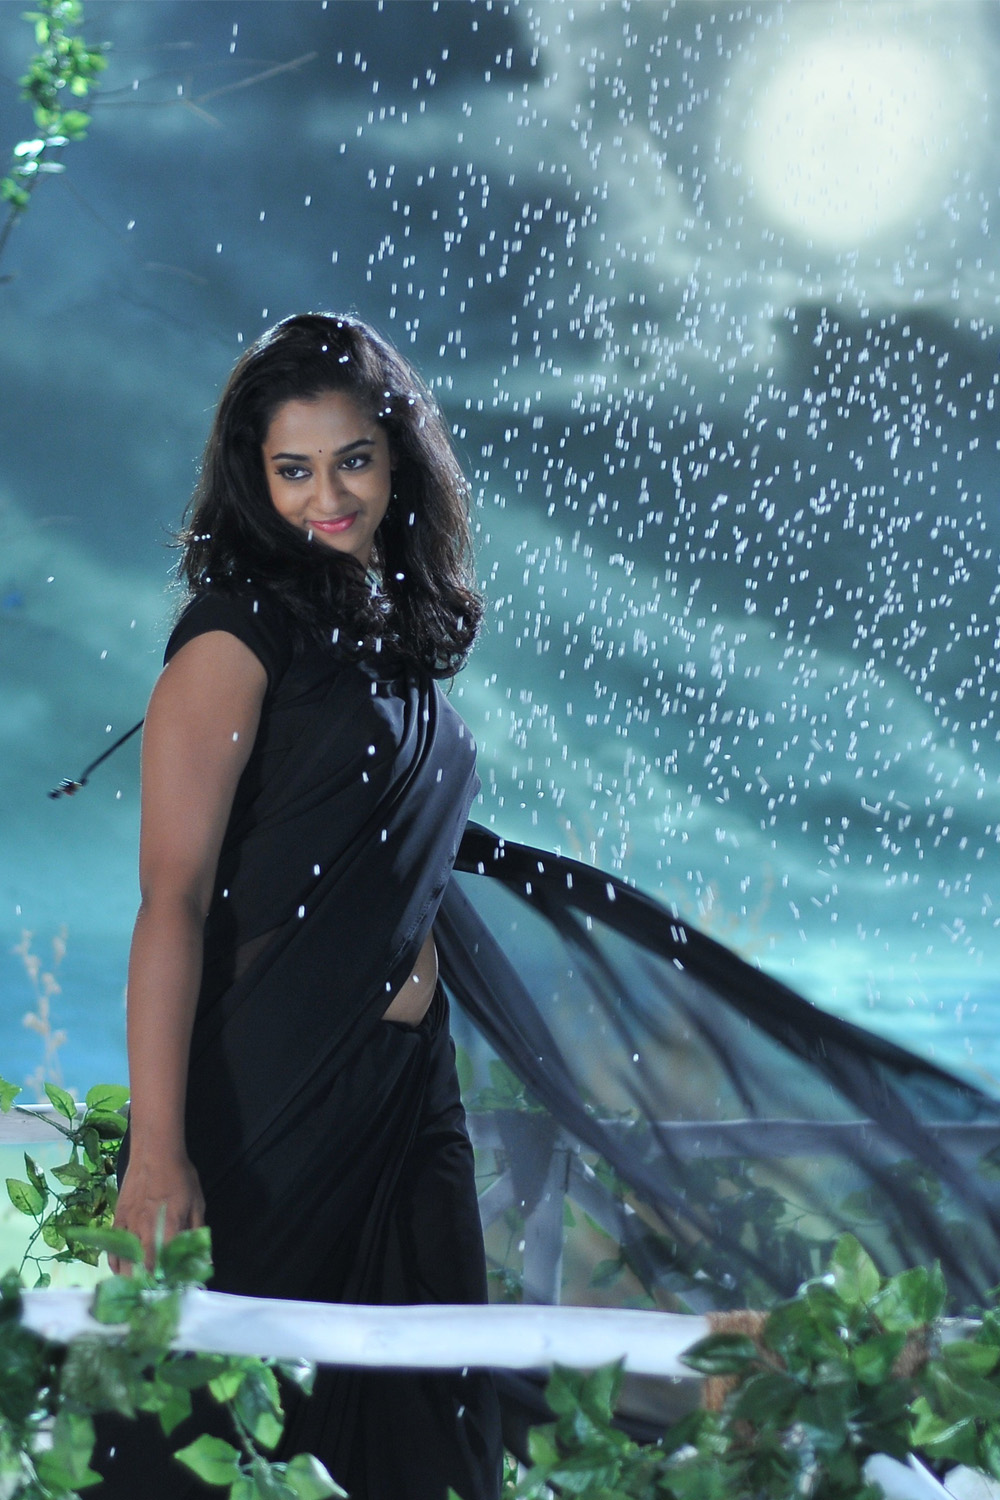 Tollywood Actress Nanditha Hot Wallpapers -Wallpapers Celebritiewalls-6718